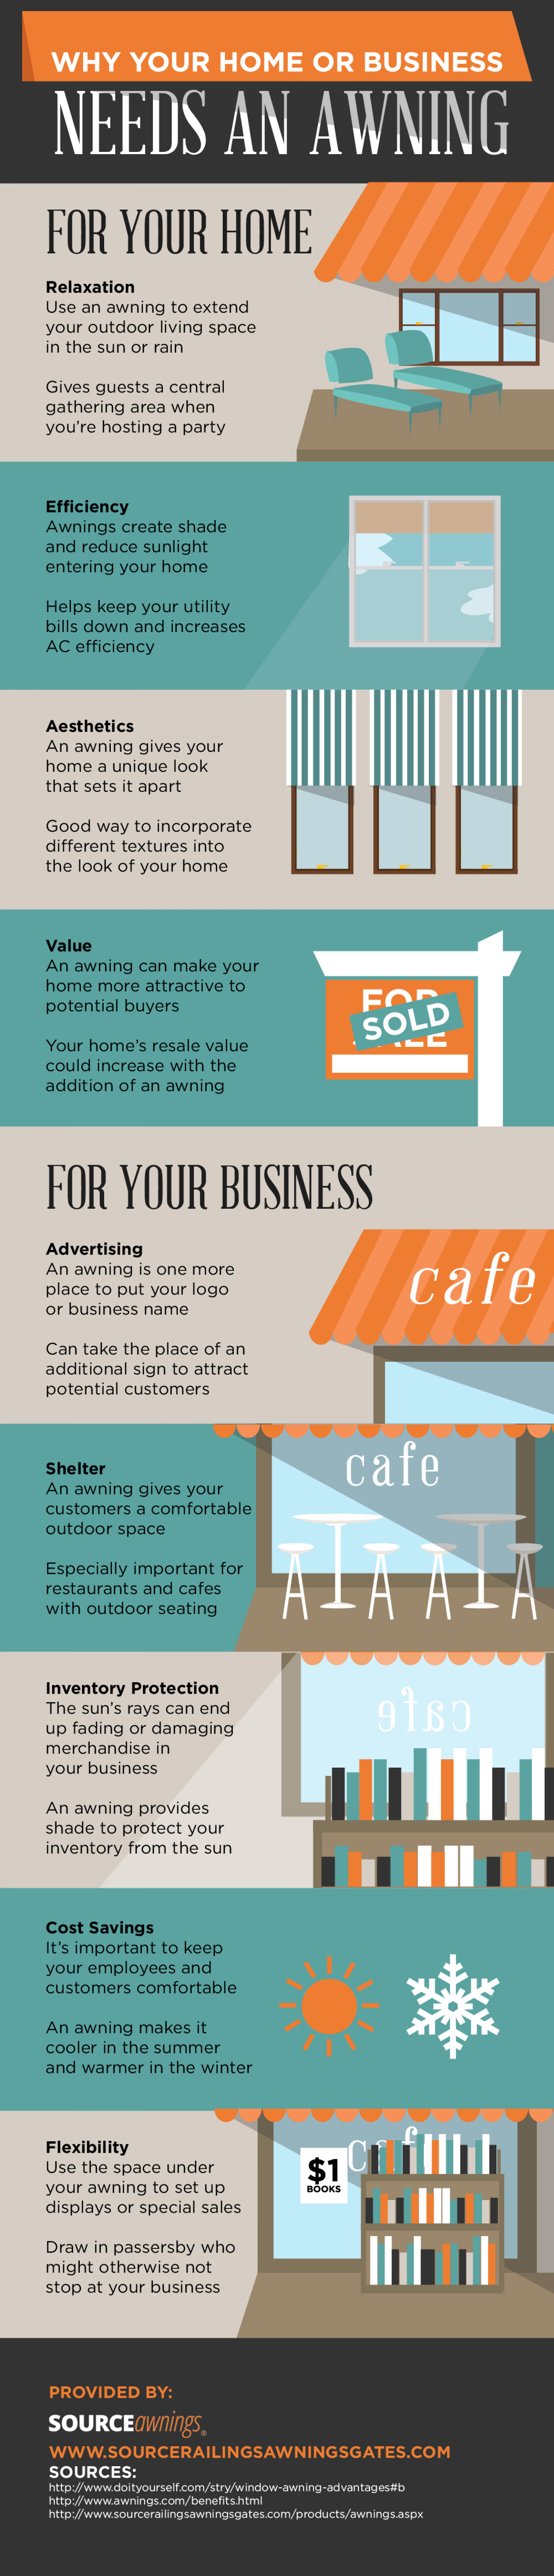 Why Your Home or Business Needs an Awning Infographic